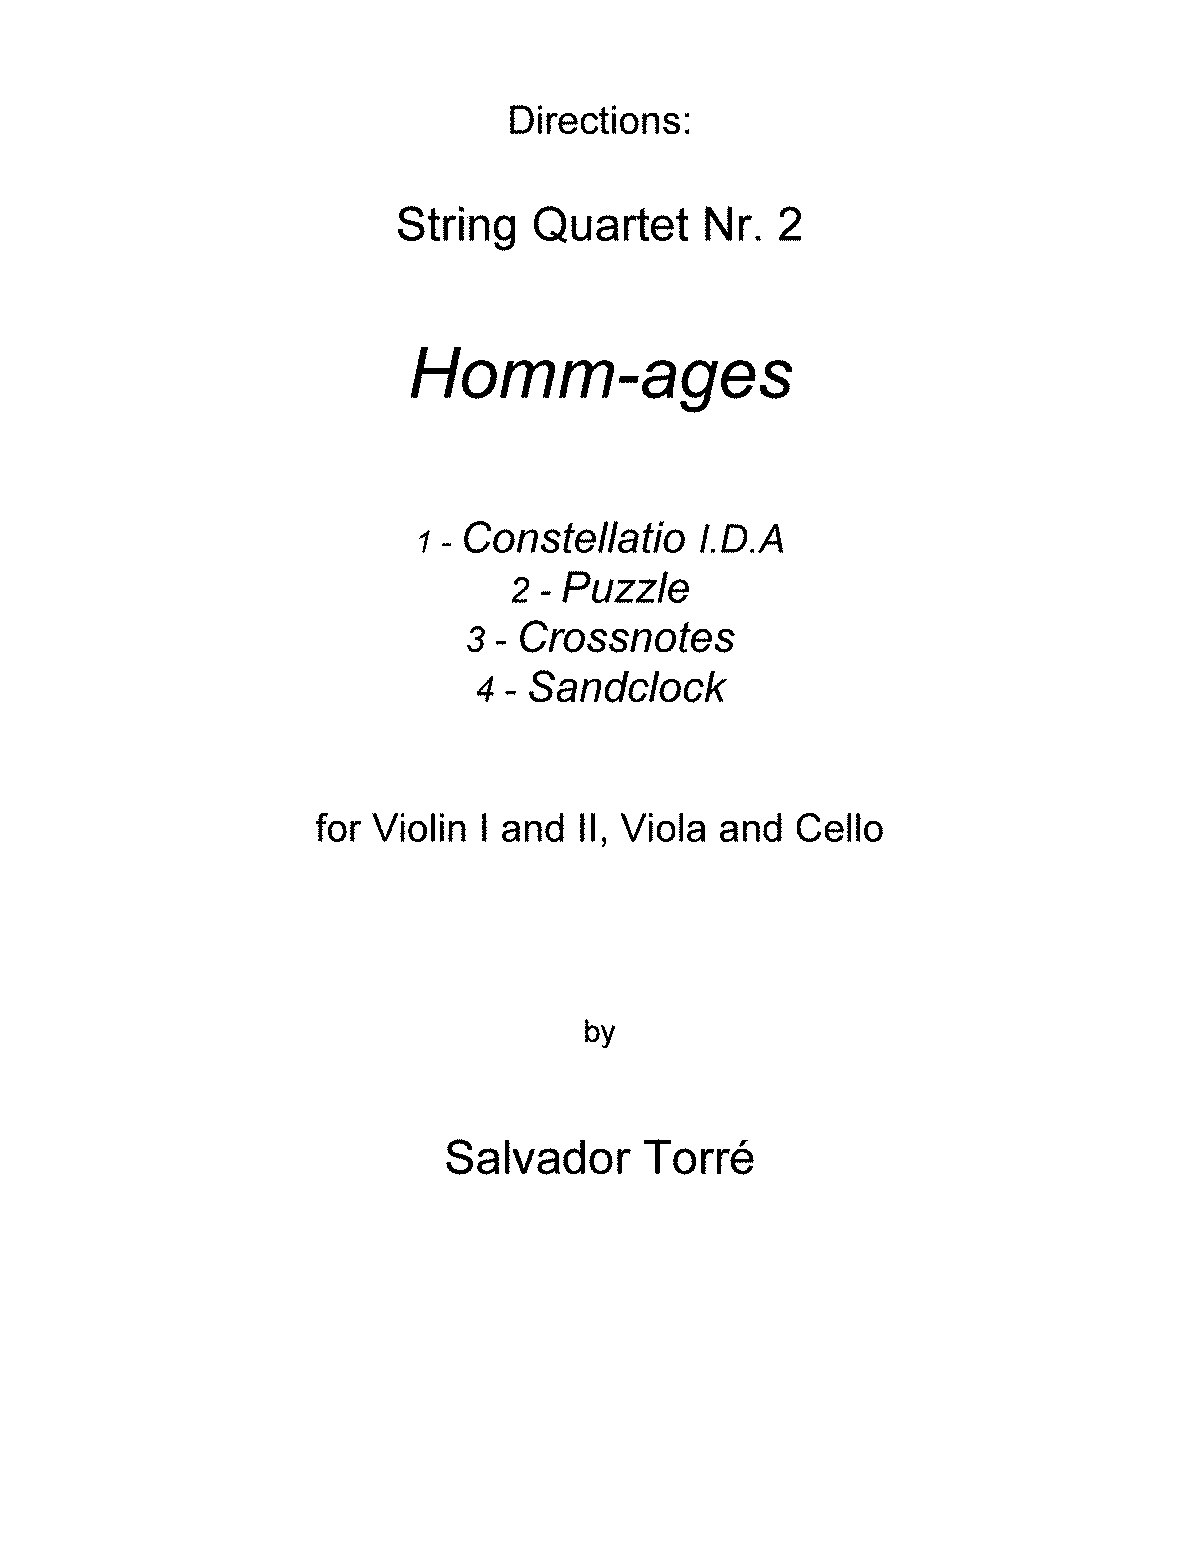 PMLP590745-Homm-ages-DIRECTIONS for musicians.pdf